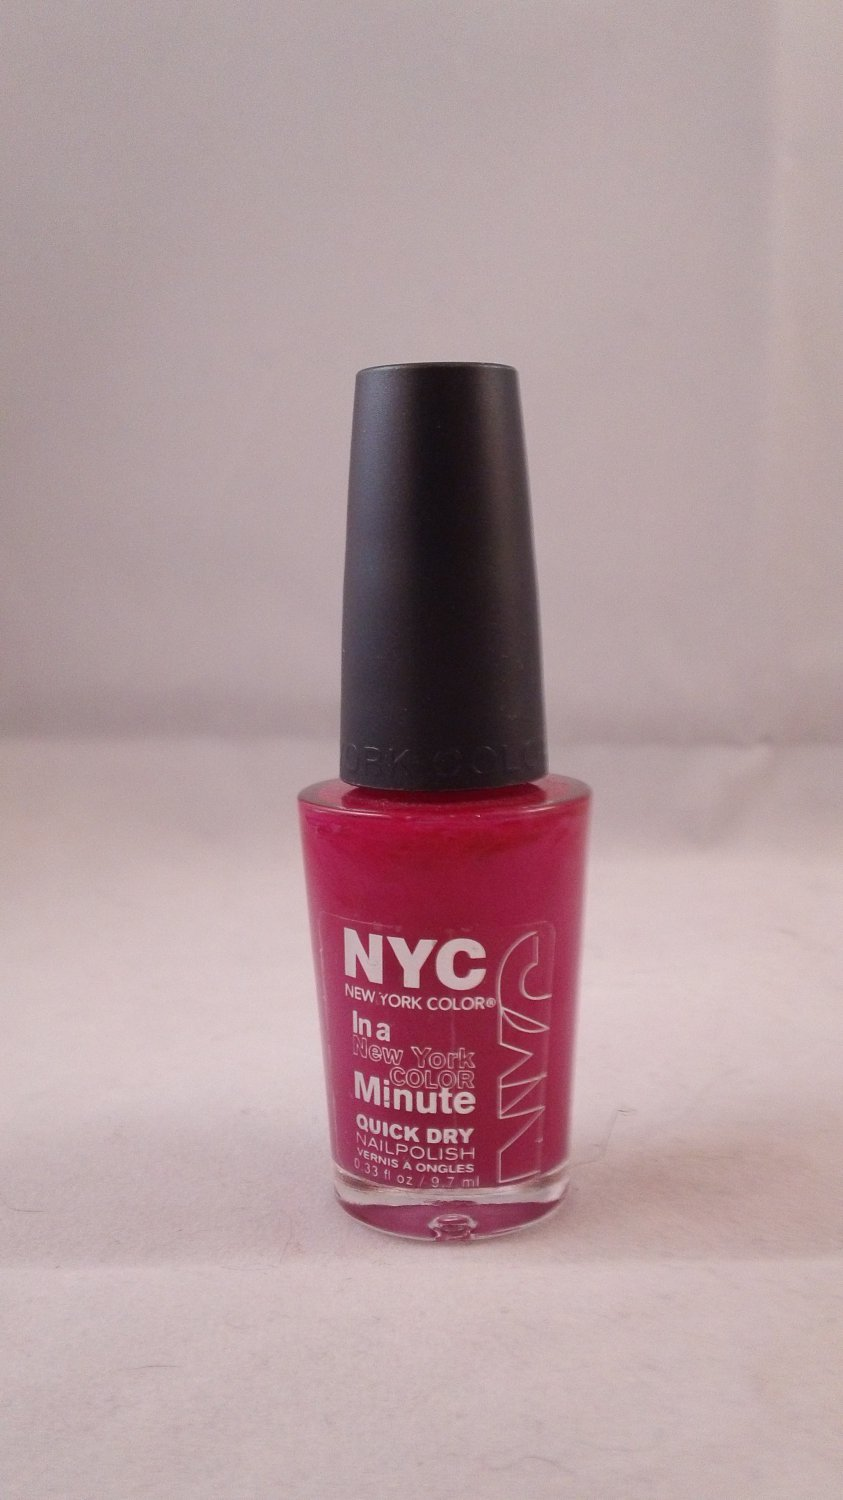 NYC In a New York Color Minute Quick Dry Nail Polish Enamel Lacquer #238 MoMa